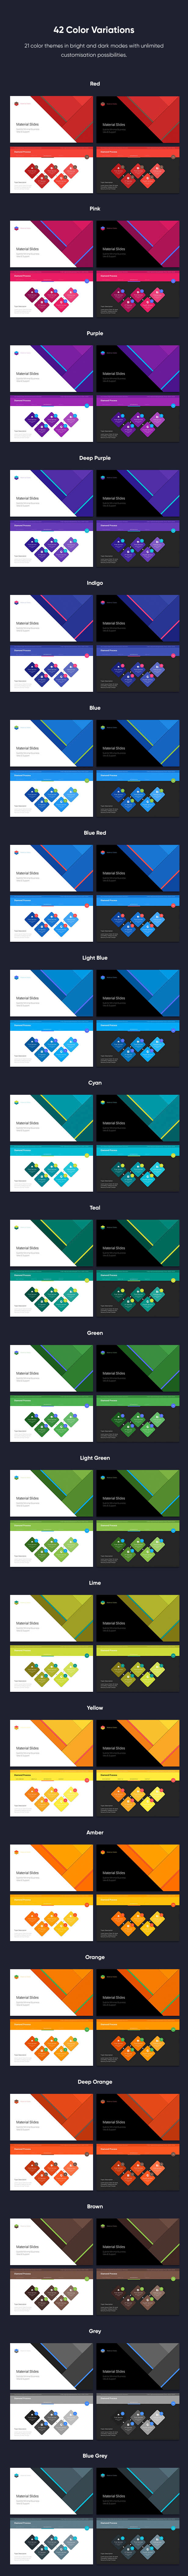 Material PowerPoint Presentation Template - 7